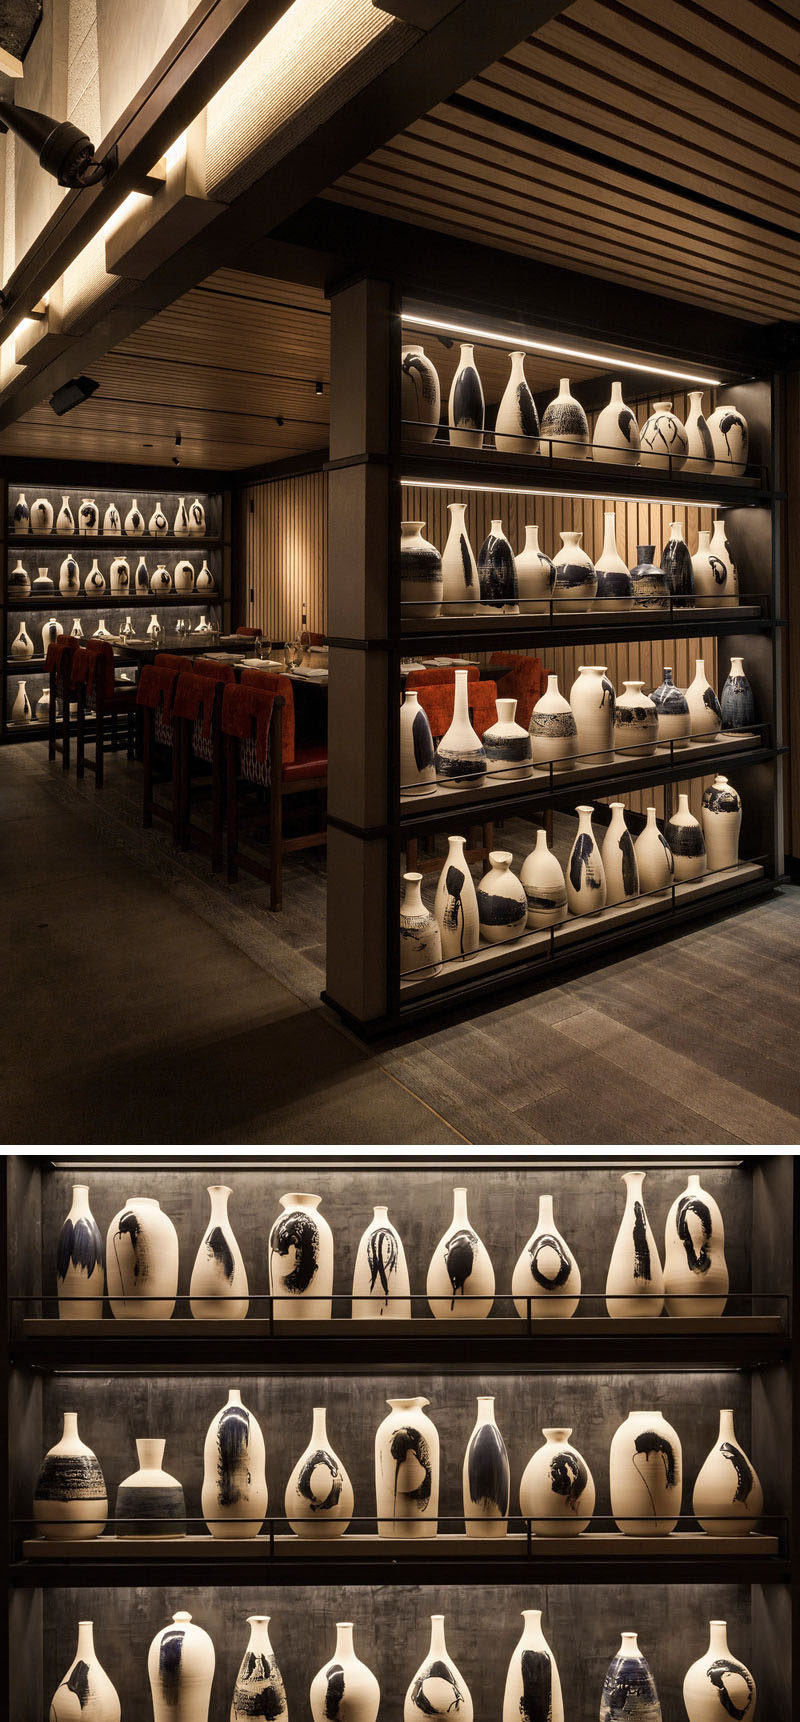 Nobu Downtown (NYC) has a collection of more than 70 handcrafted earthenware rice-wine bottles that fill two floor-to-ceiling open shelves.